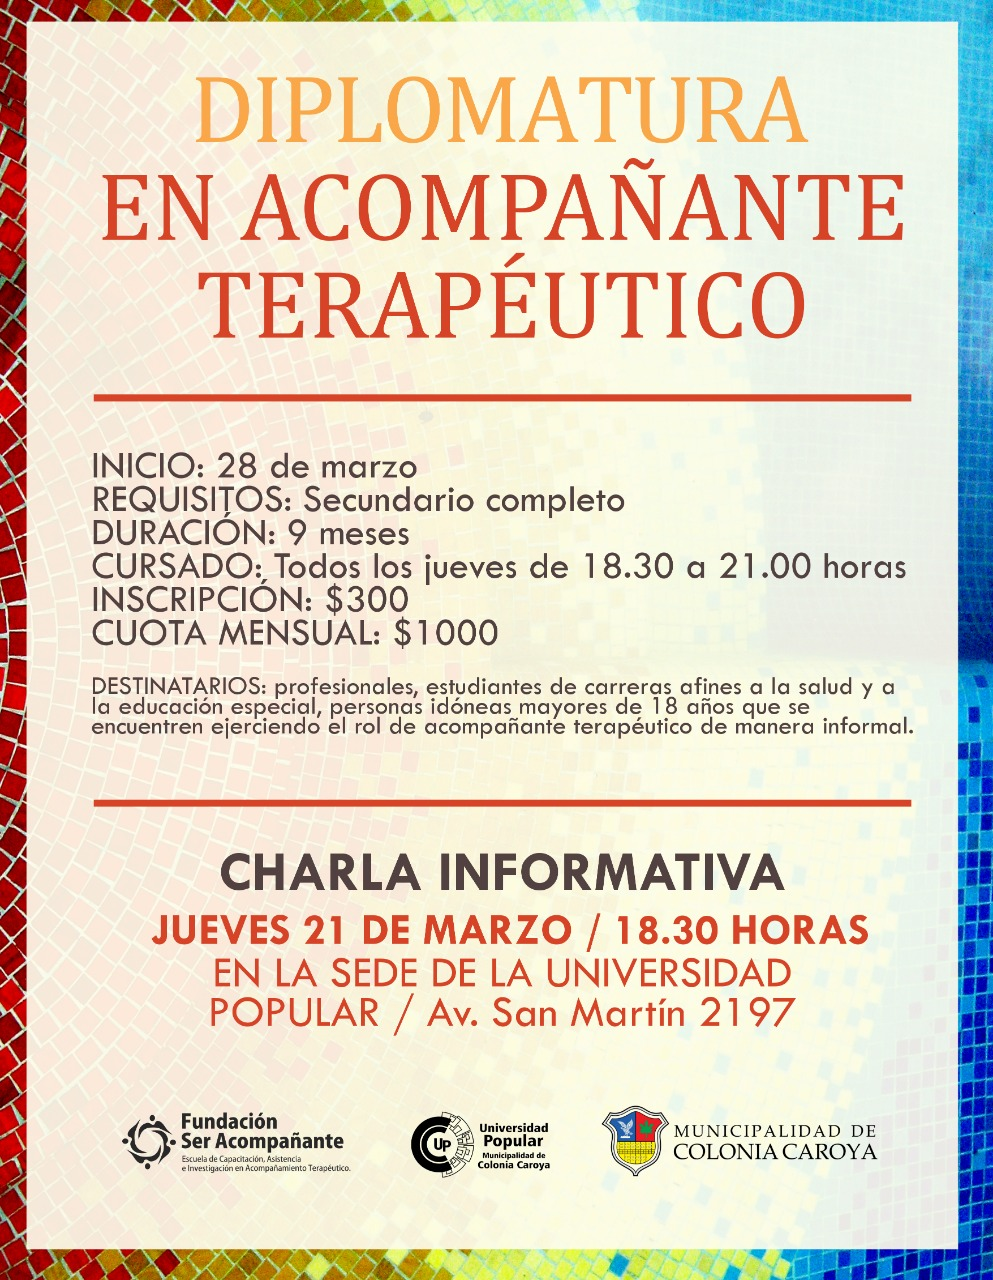 acompañante terapeutico universidad popular